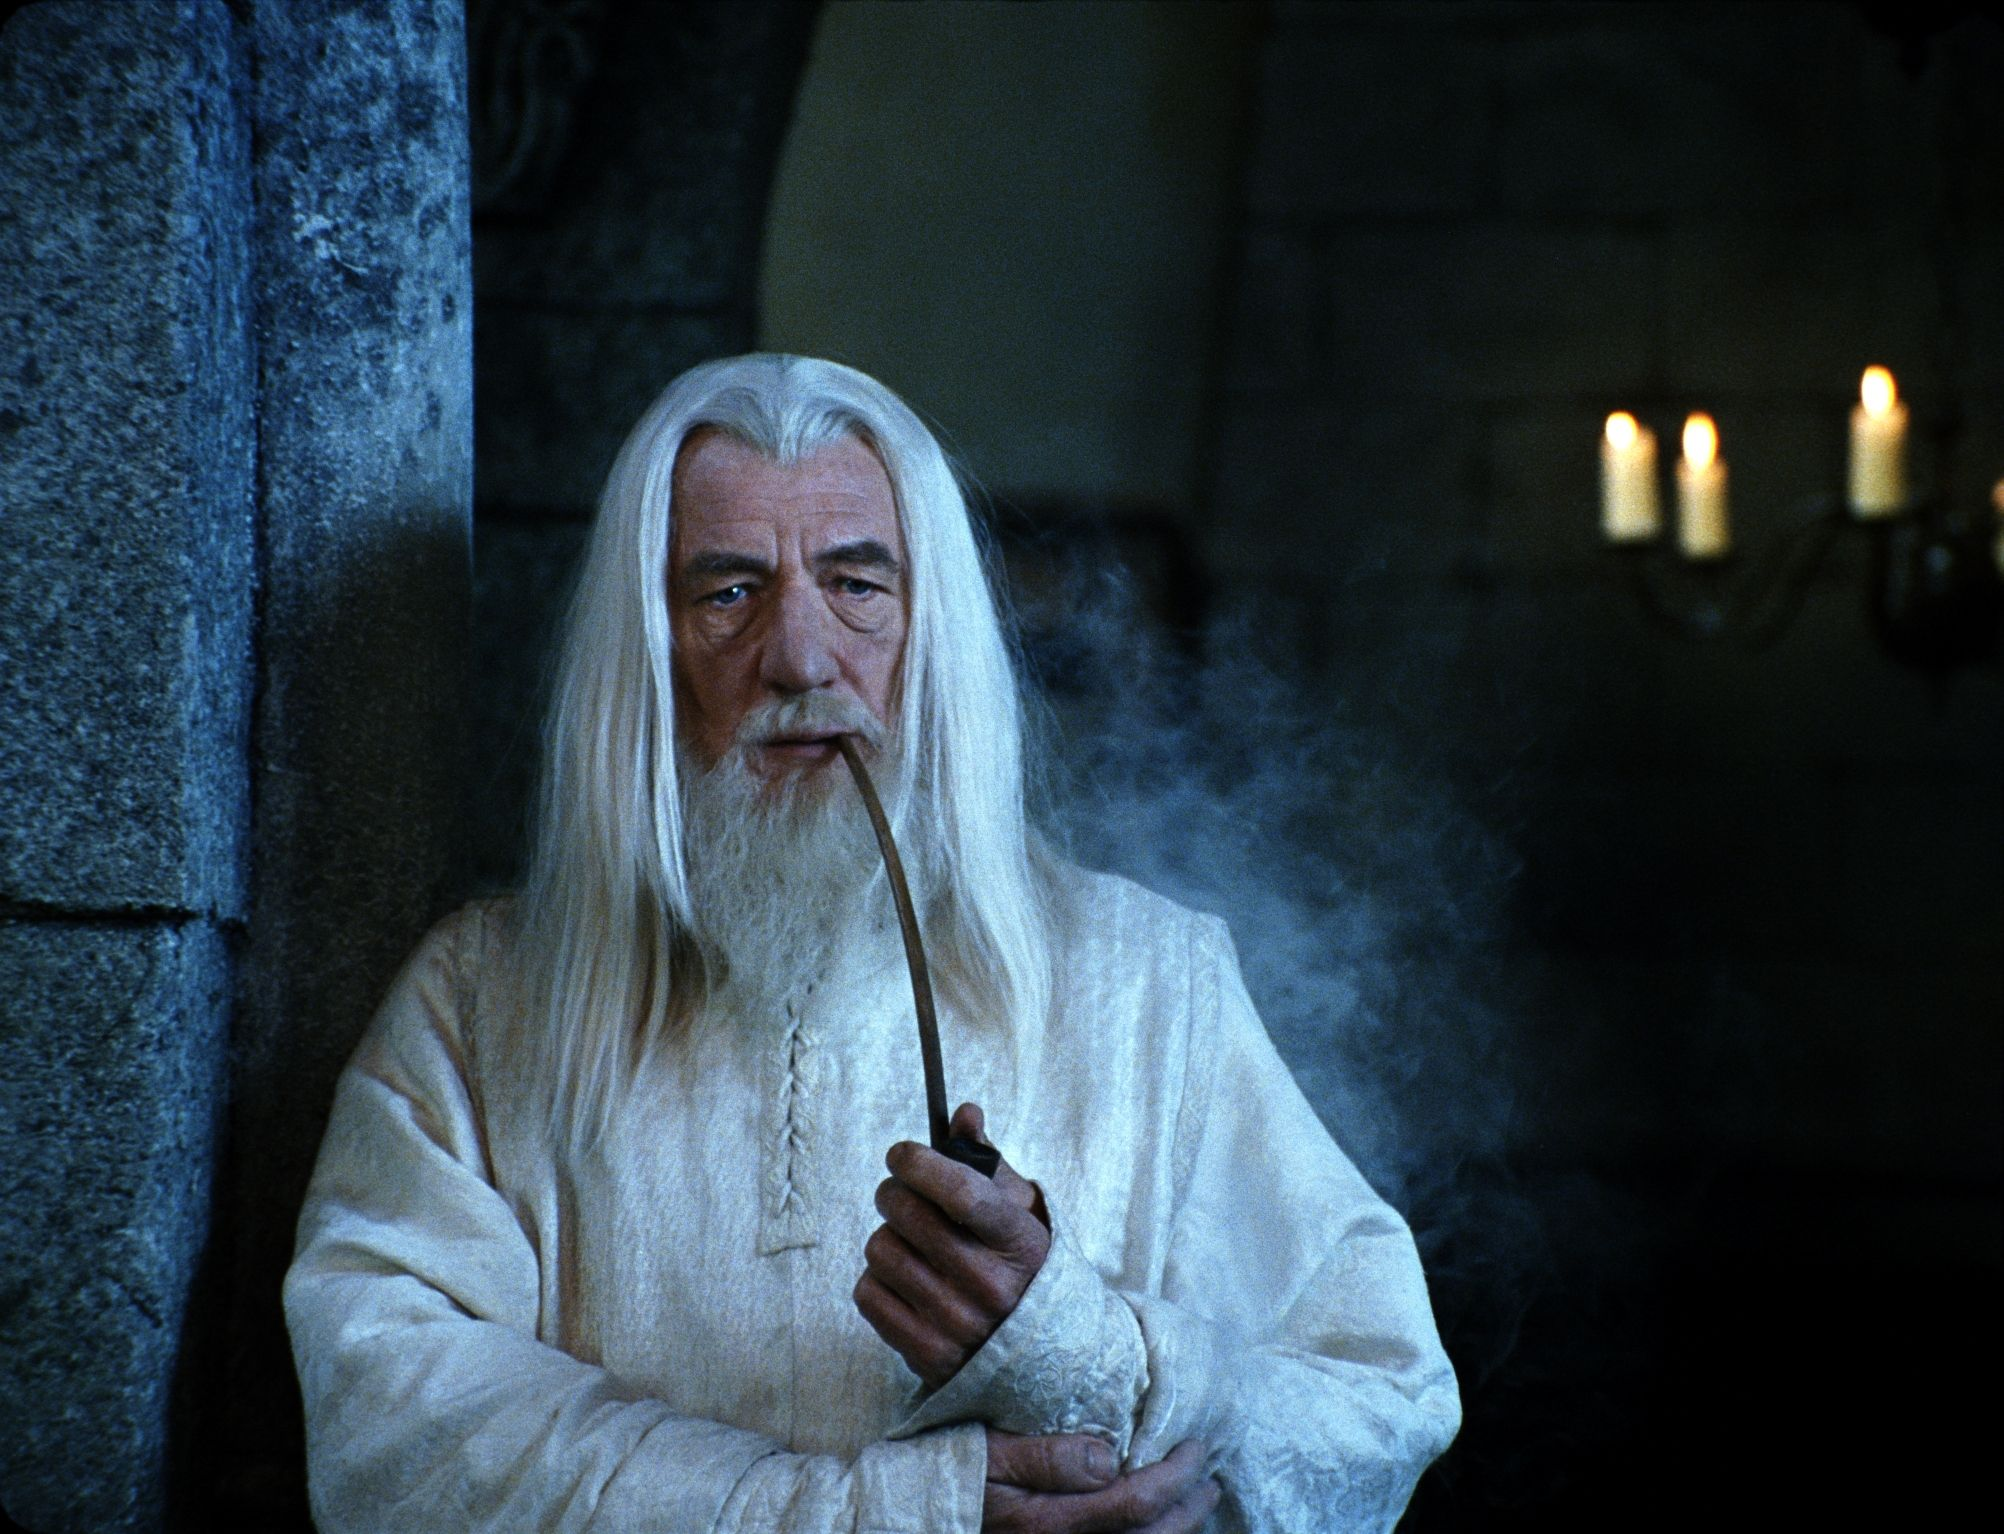 Gandalf White Lord Of The Rings Lord Of The Rings Ian Mckellen The Hobbit